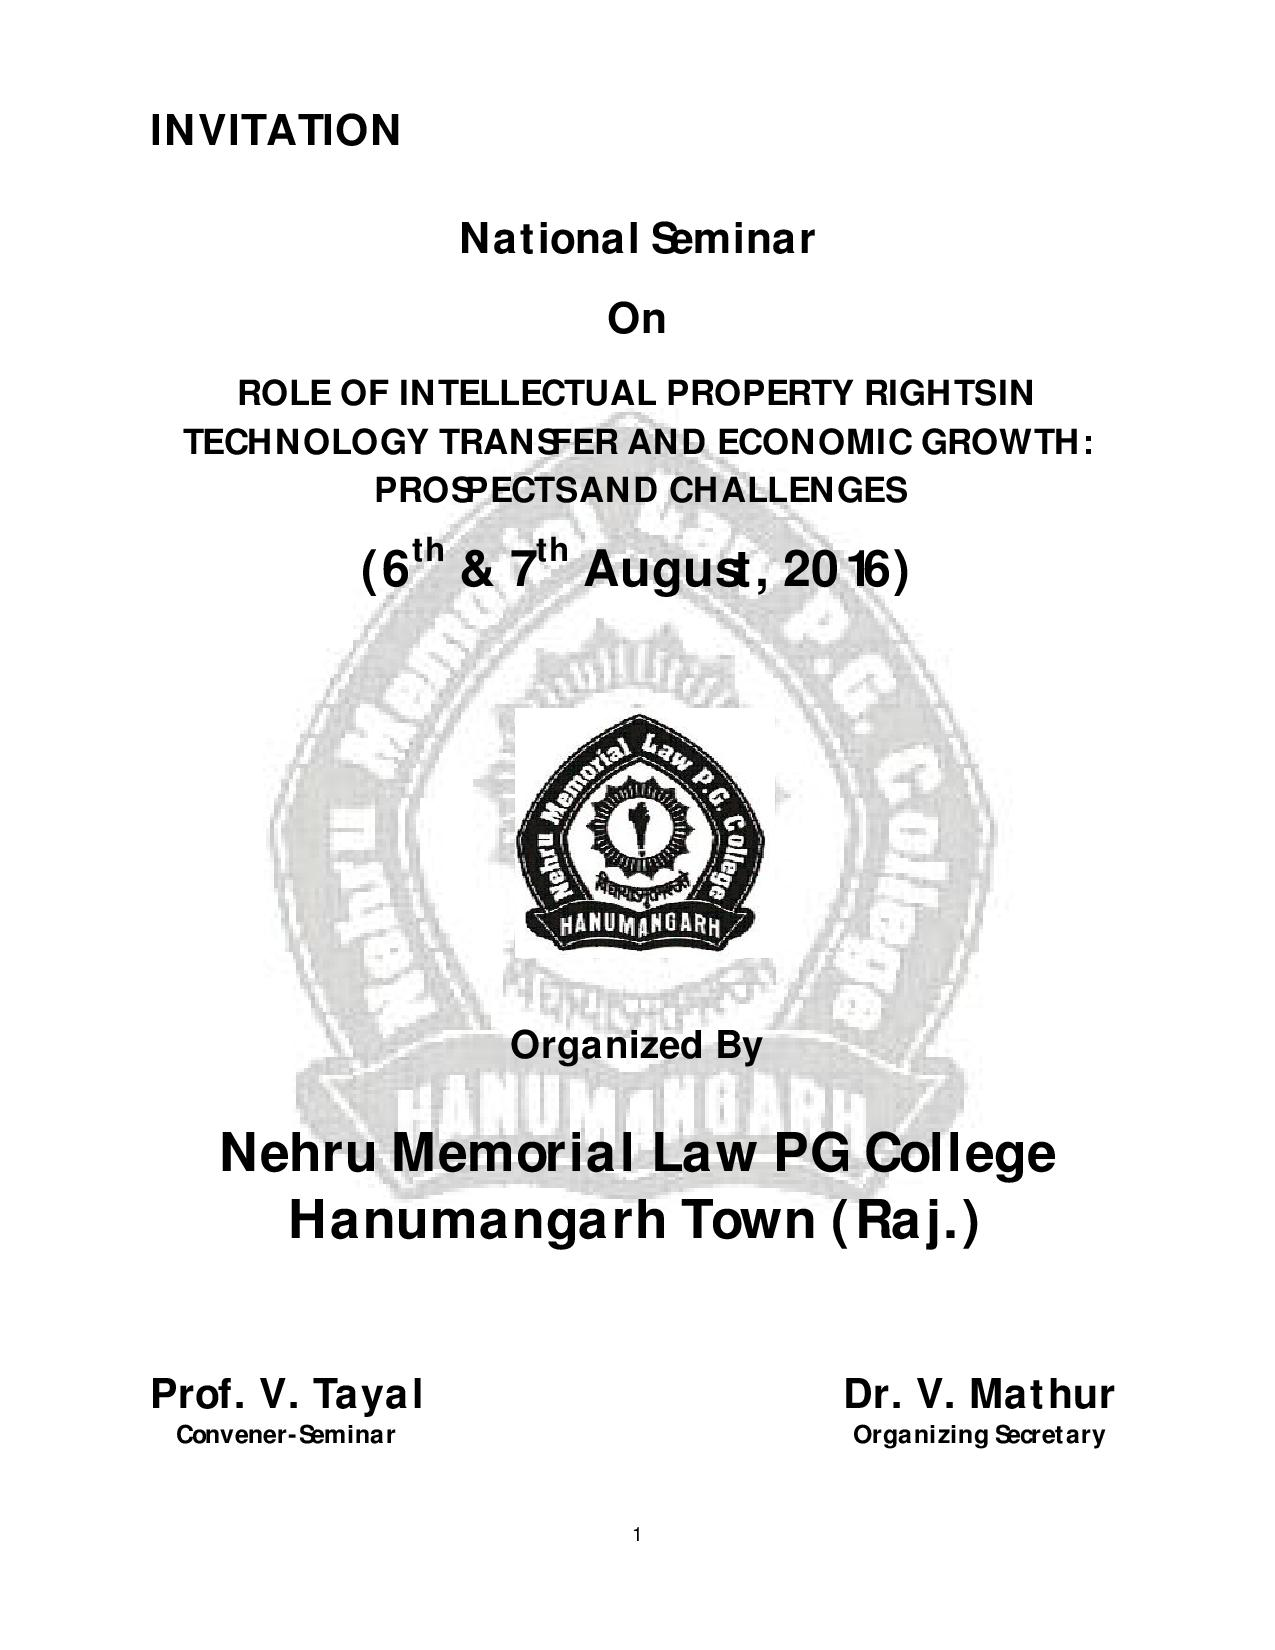 Nehru Memorial Law PG College's Seminar on Role of Intellectual Property Rights in Technology Transfer and Economic Growth